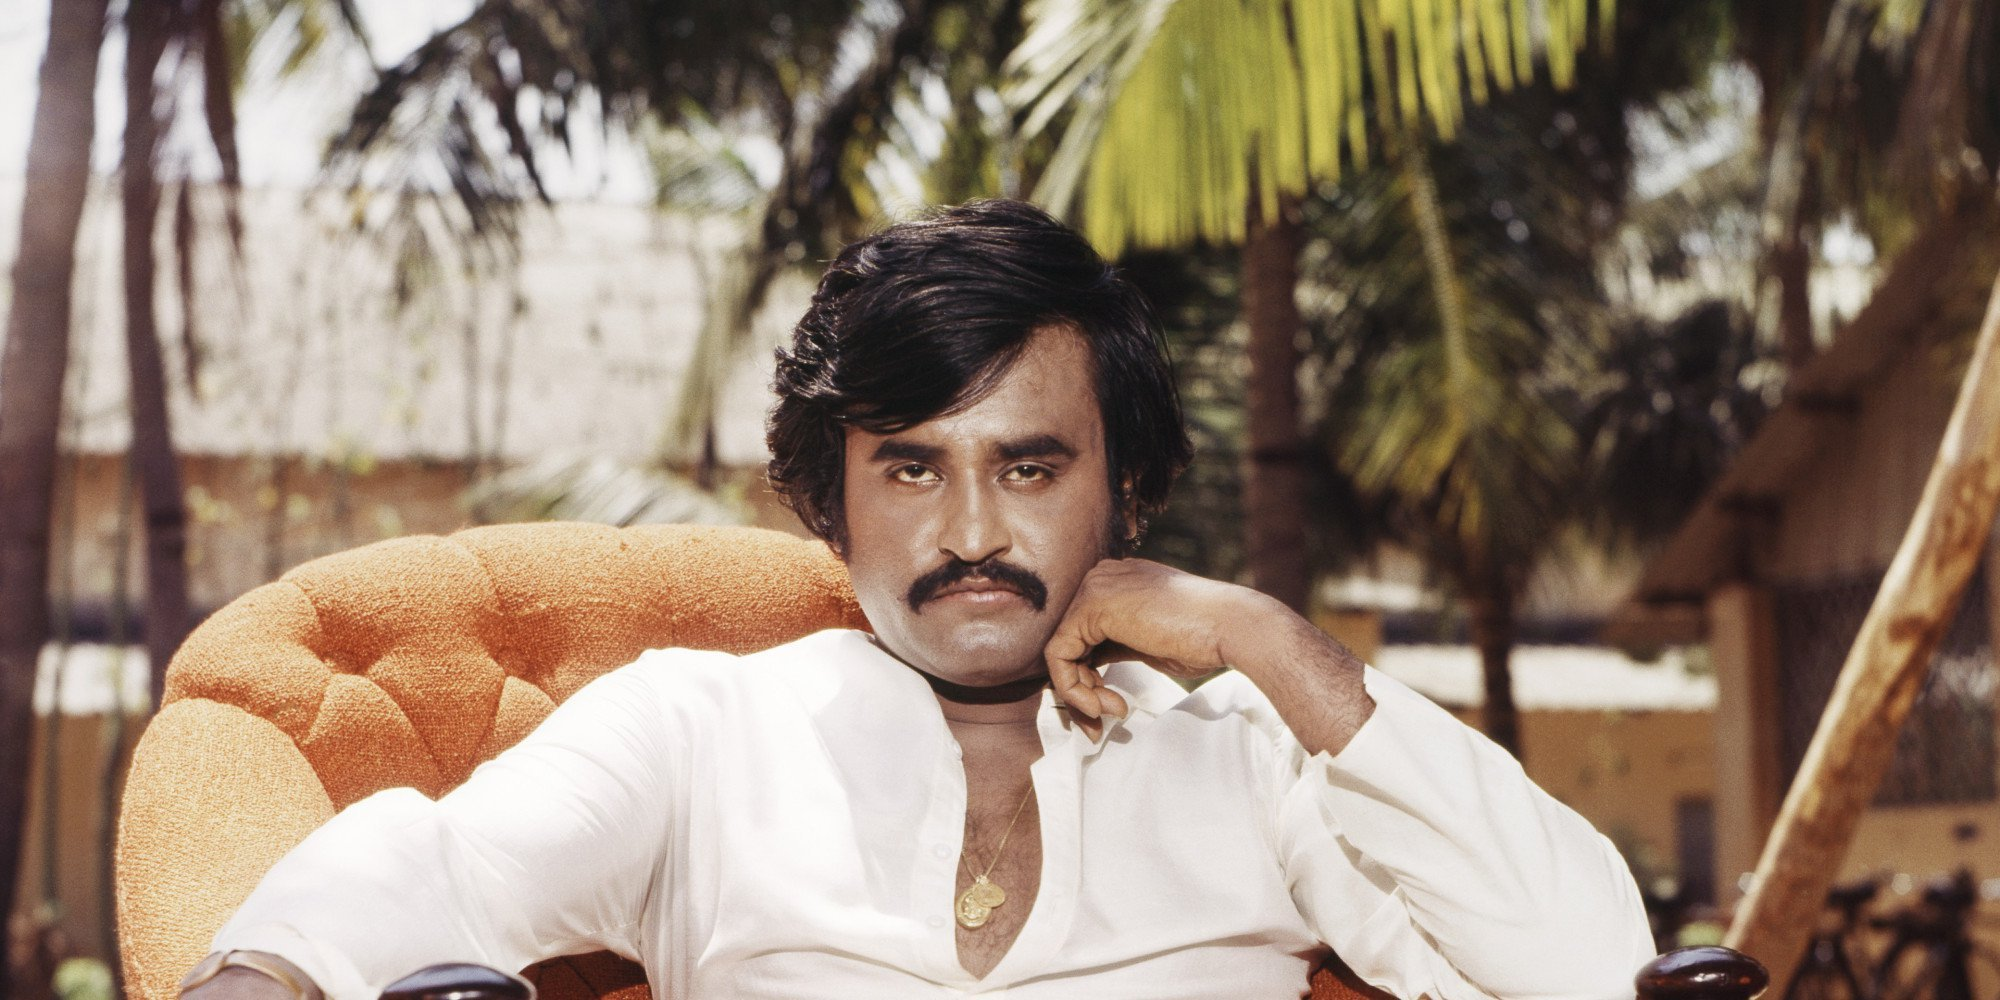 rajinikanth wikirajinikanth movies, rajinikanth age, rajinikanth mp3 song, rajinikanth style videos, rajinikanth height, rajinikanth films, rajinikanth dob, rajinikanth robot 2 trailer, rajinikanth instagram, rajinikanth movie list, rajinikanth song, rajinikanth wiki, rajinikanth songs free download, rajinikanth twitter, rajinikanth robot, rajinikanth number of movies, rajinikanth filmography, rajinikanth film robot, rajinikanth facebook, rajinikanth now